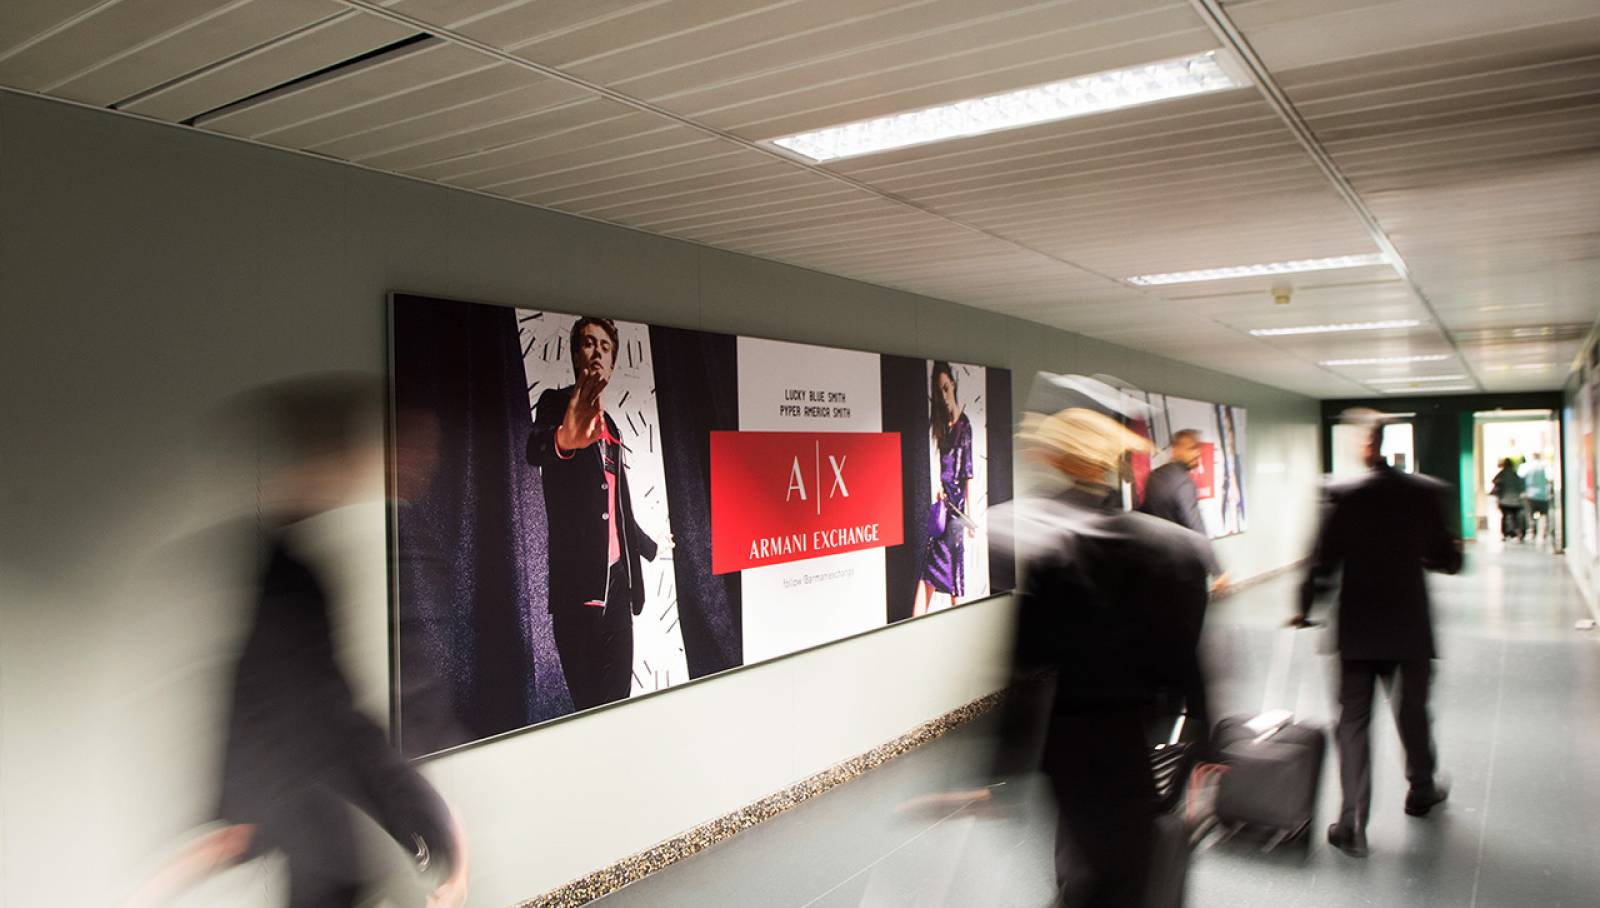 Airport Advertising IGPDecaux Finger at Malpensa airport for Armani